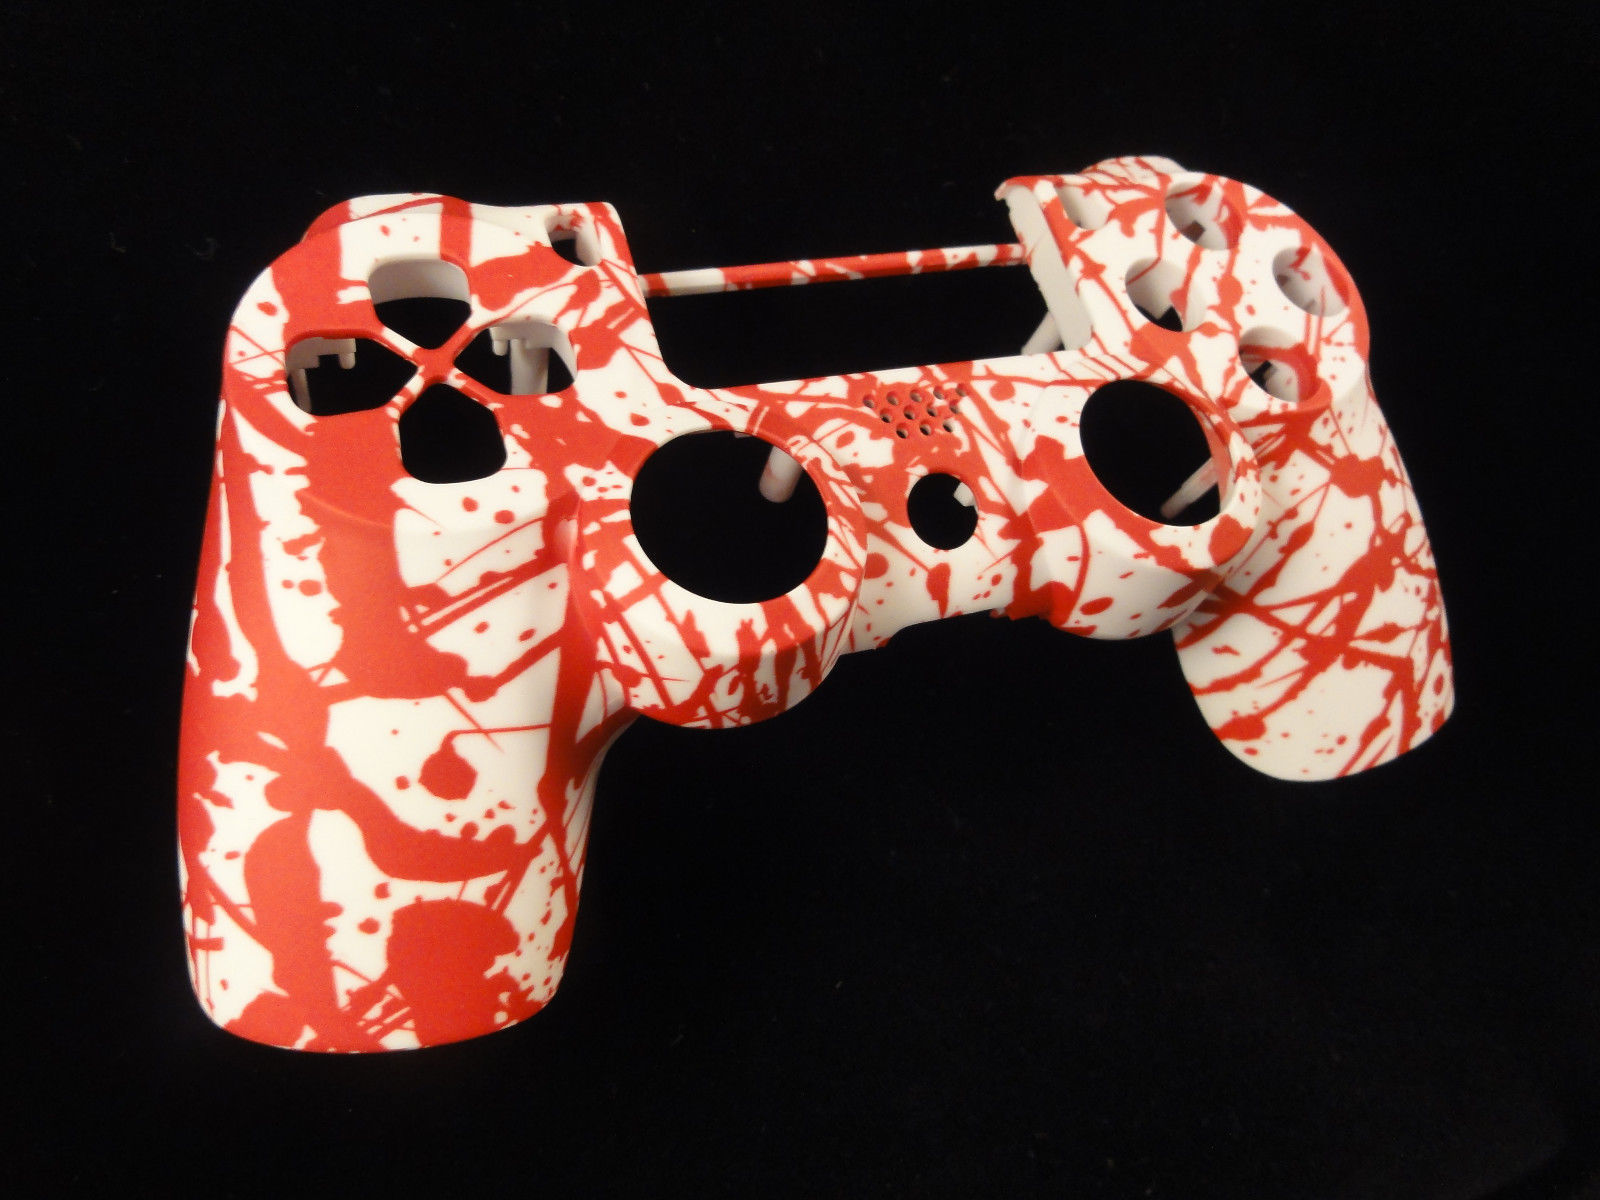 Blood Sacrifice Soft Touch Front Face Shell and 15 similar items